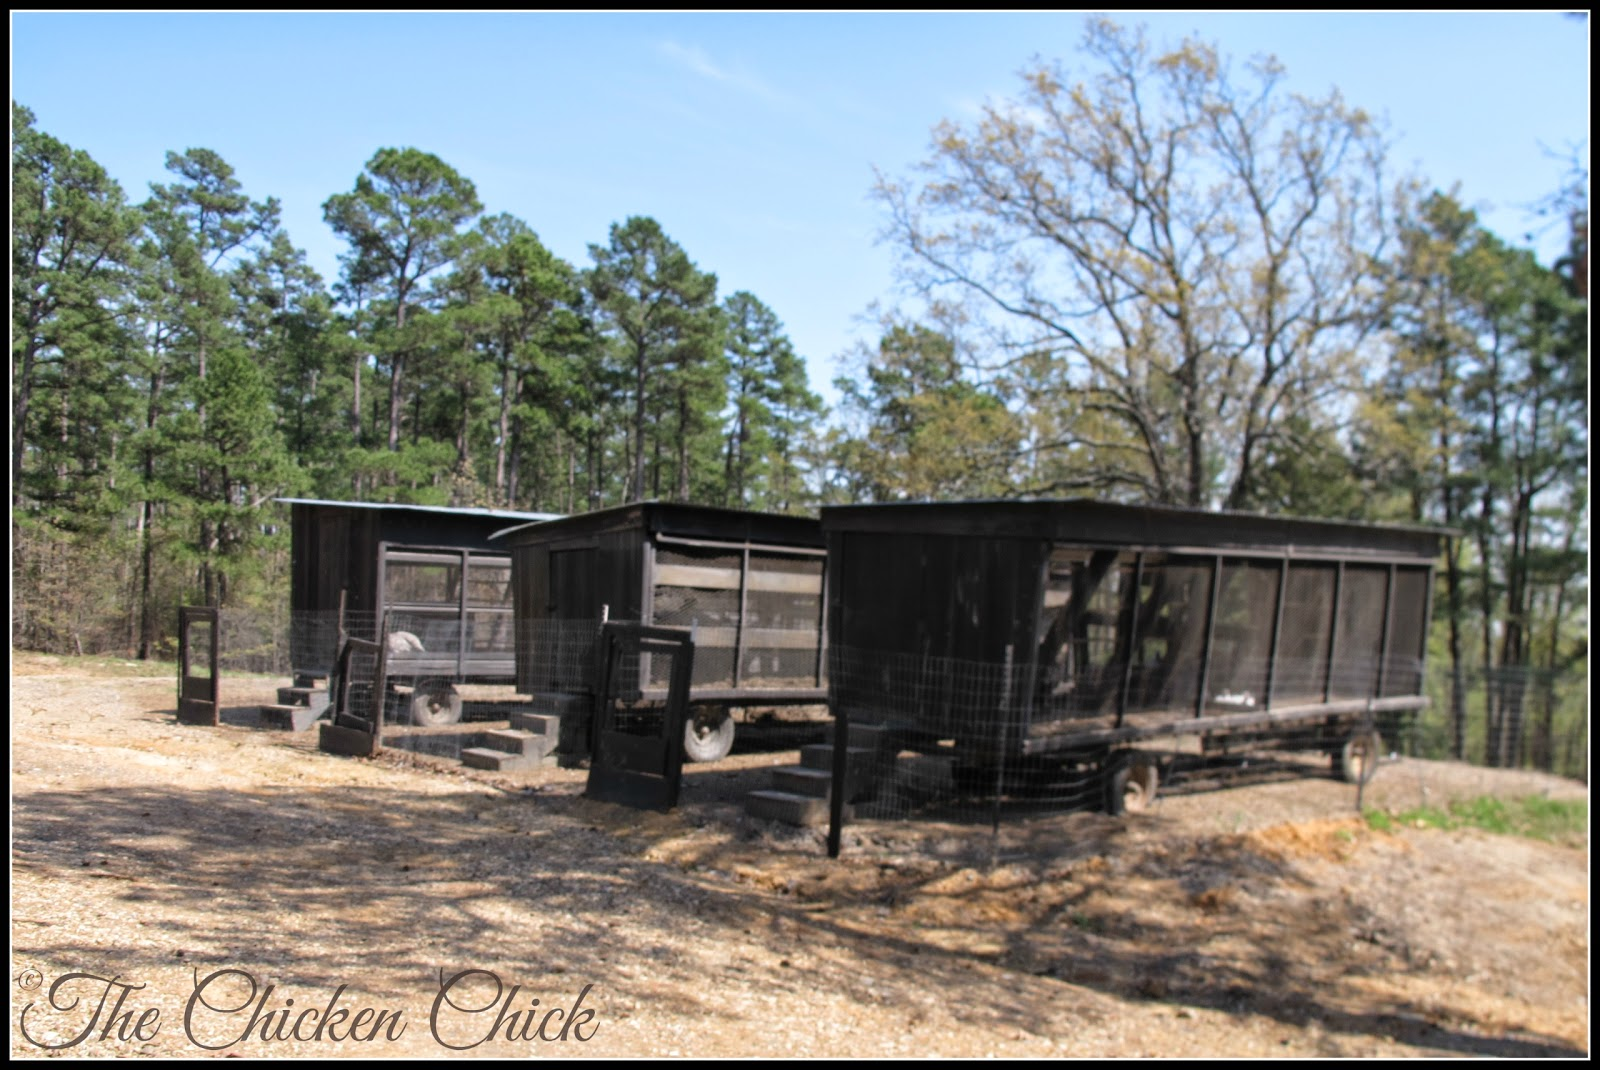 Chicken tractors, formerly cotton trailers, were the chickens' accommodations prior to construction of the chicken barn at P Allen Smith's Moss Mountain Farm